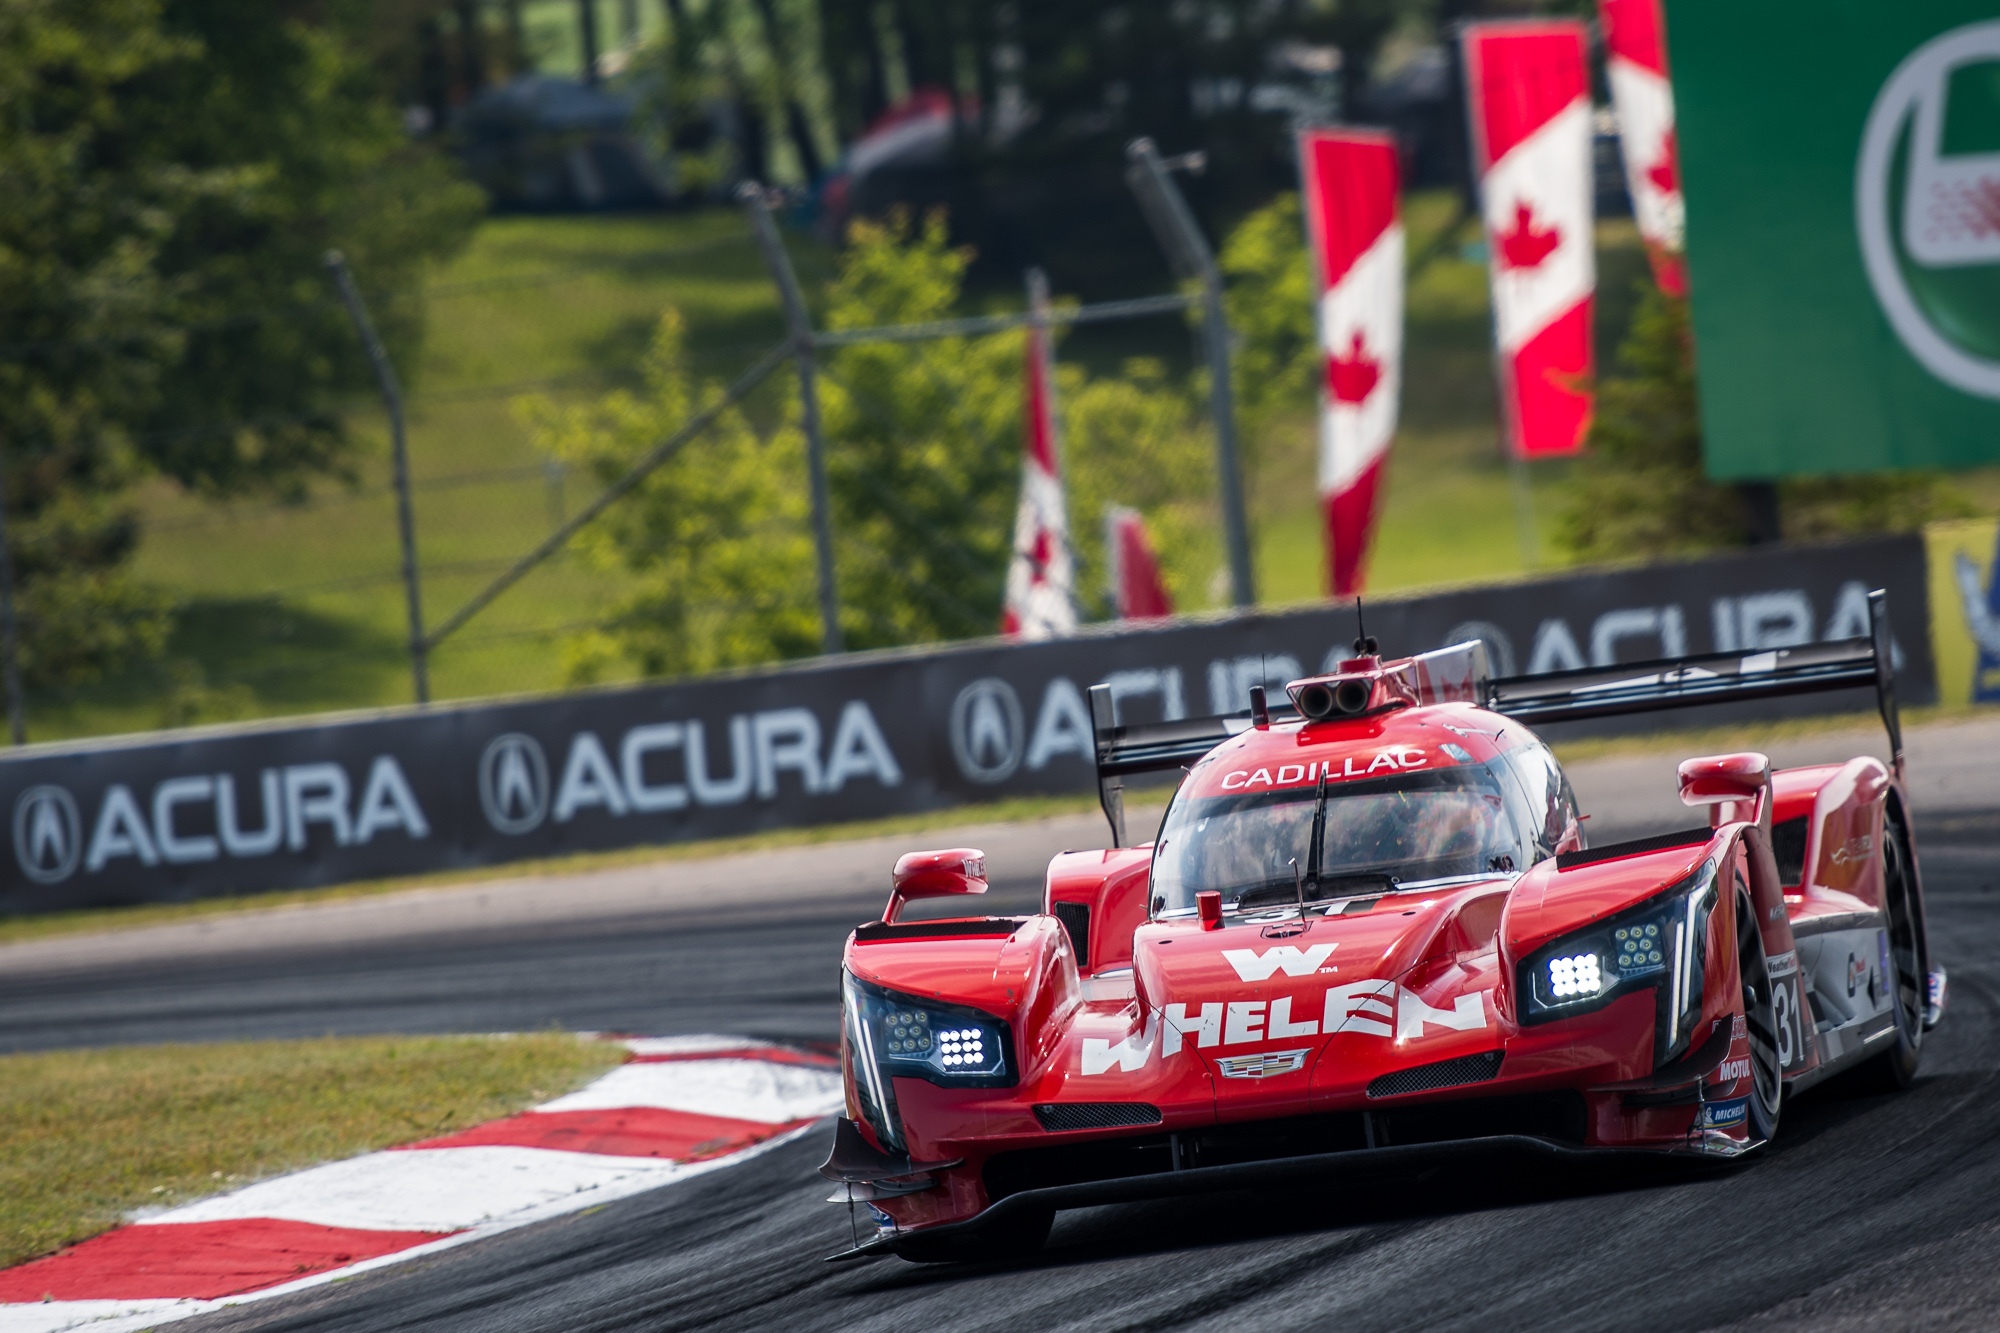 Photo of IMSA – Quarto lugar no Canadá mantém Nasr e Derani na briga